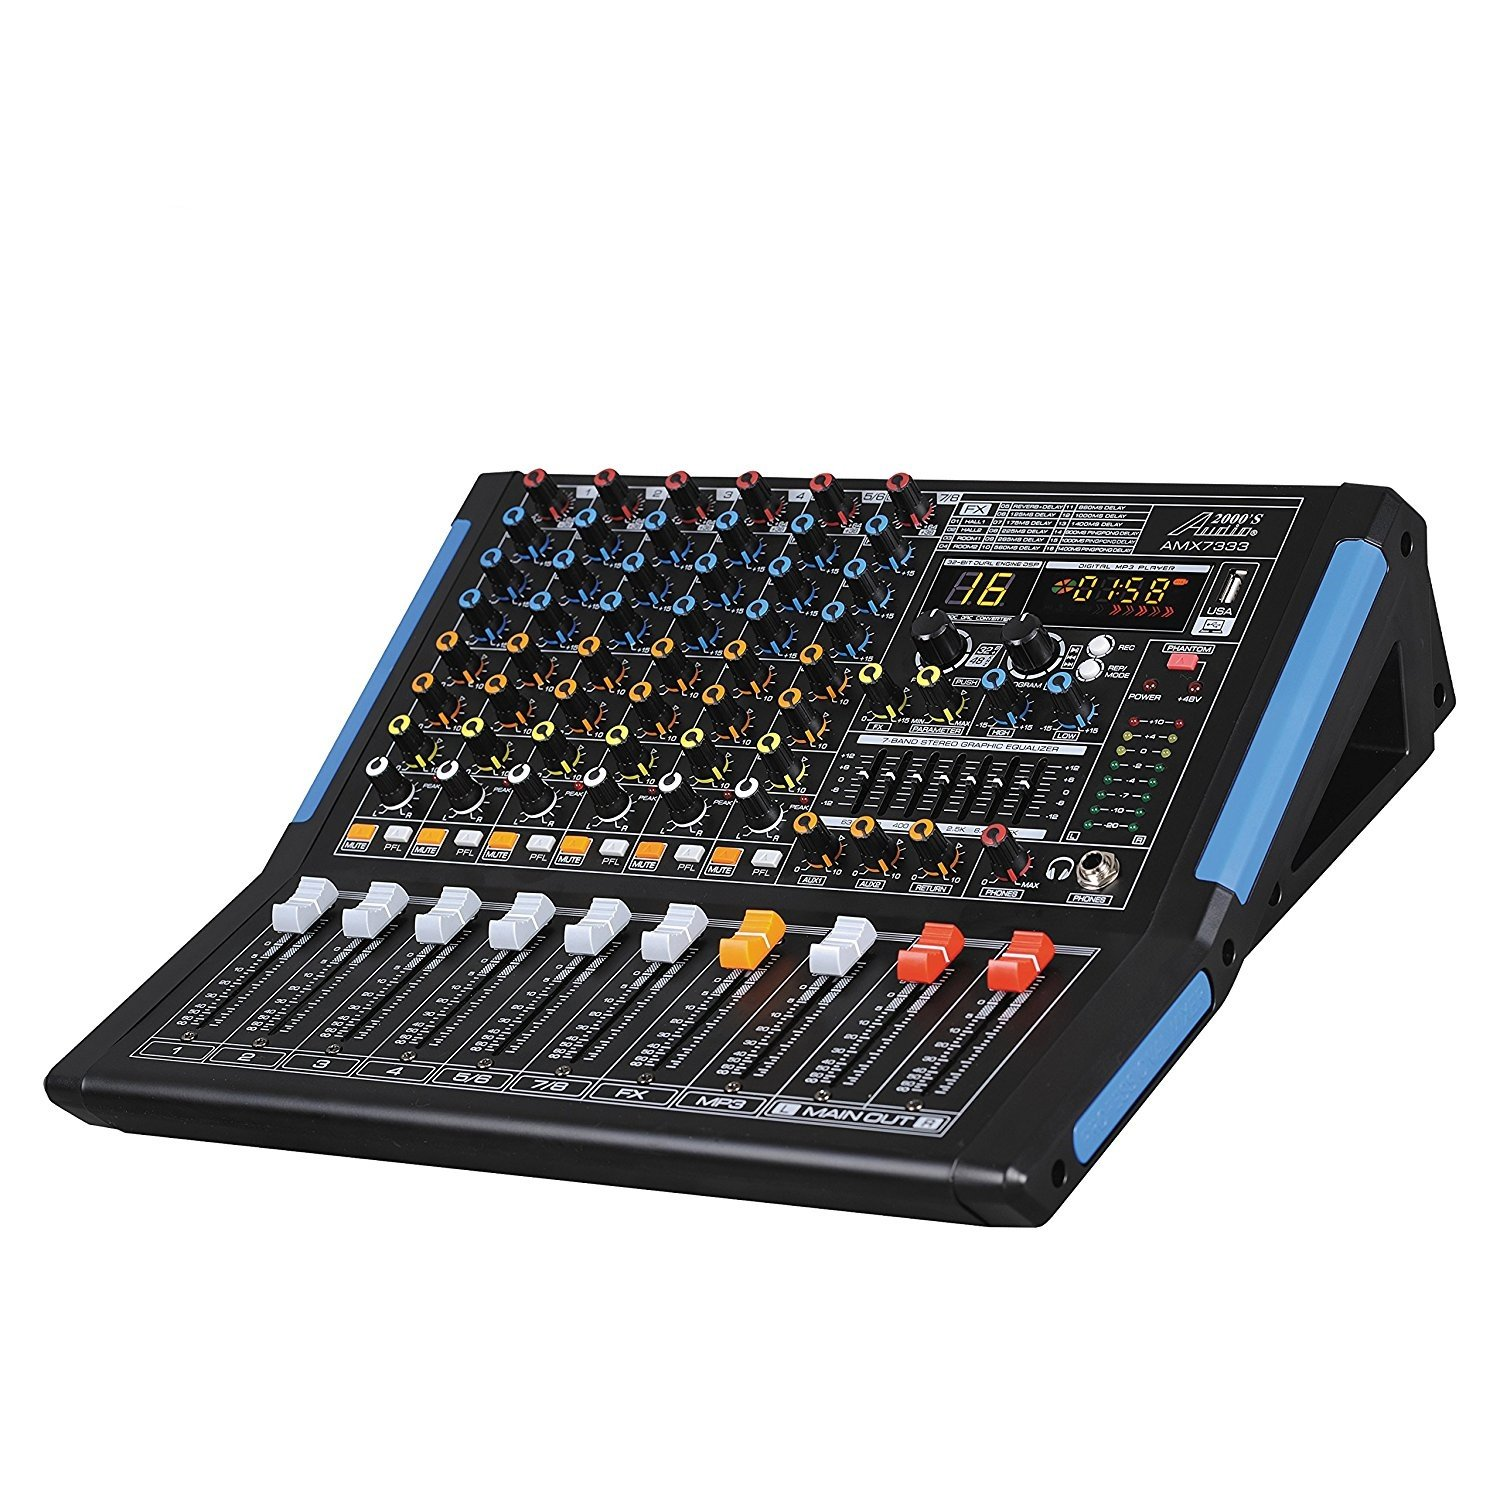 Audio 2000s AMX7333UBT 8-Channel Audio Mixer Sound Board with USB Interface and Bluetooth 4334432167